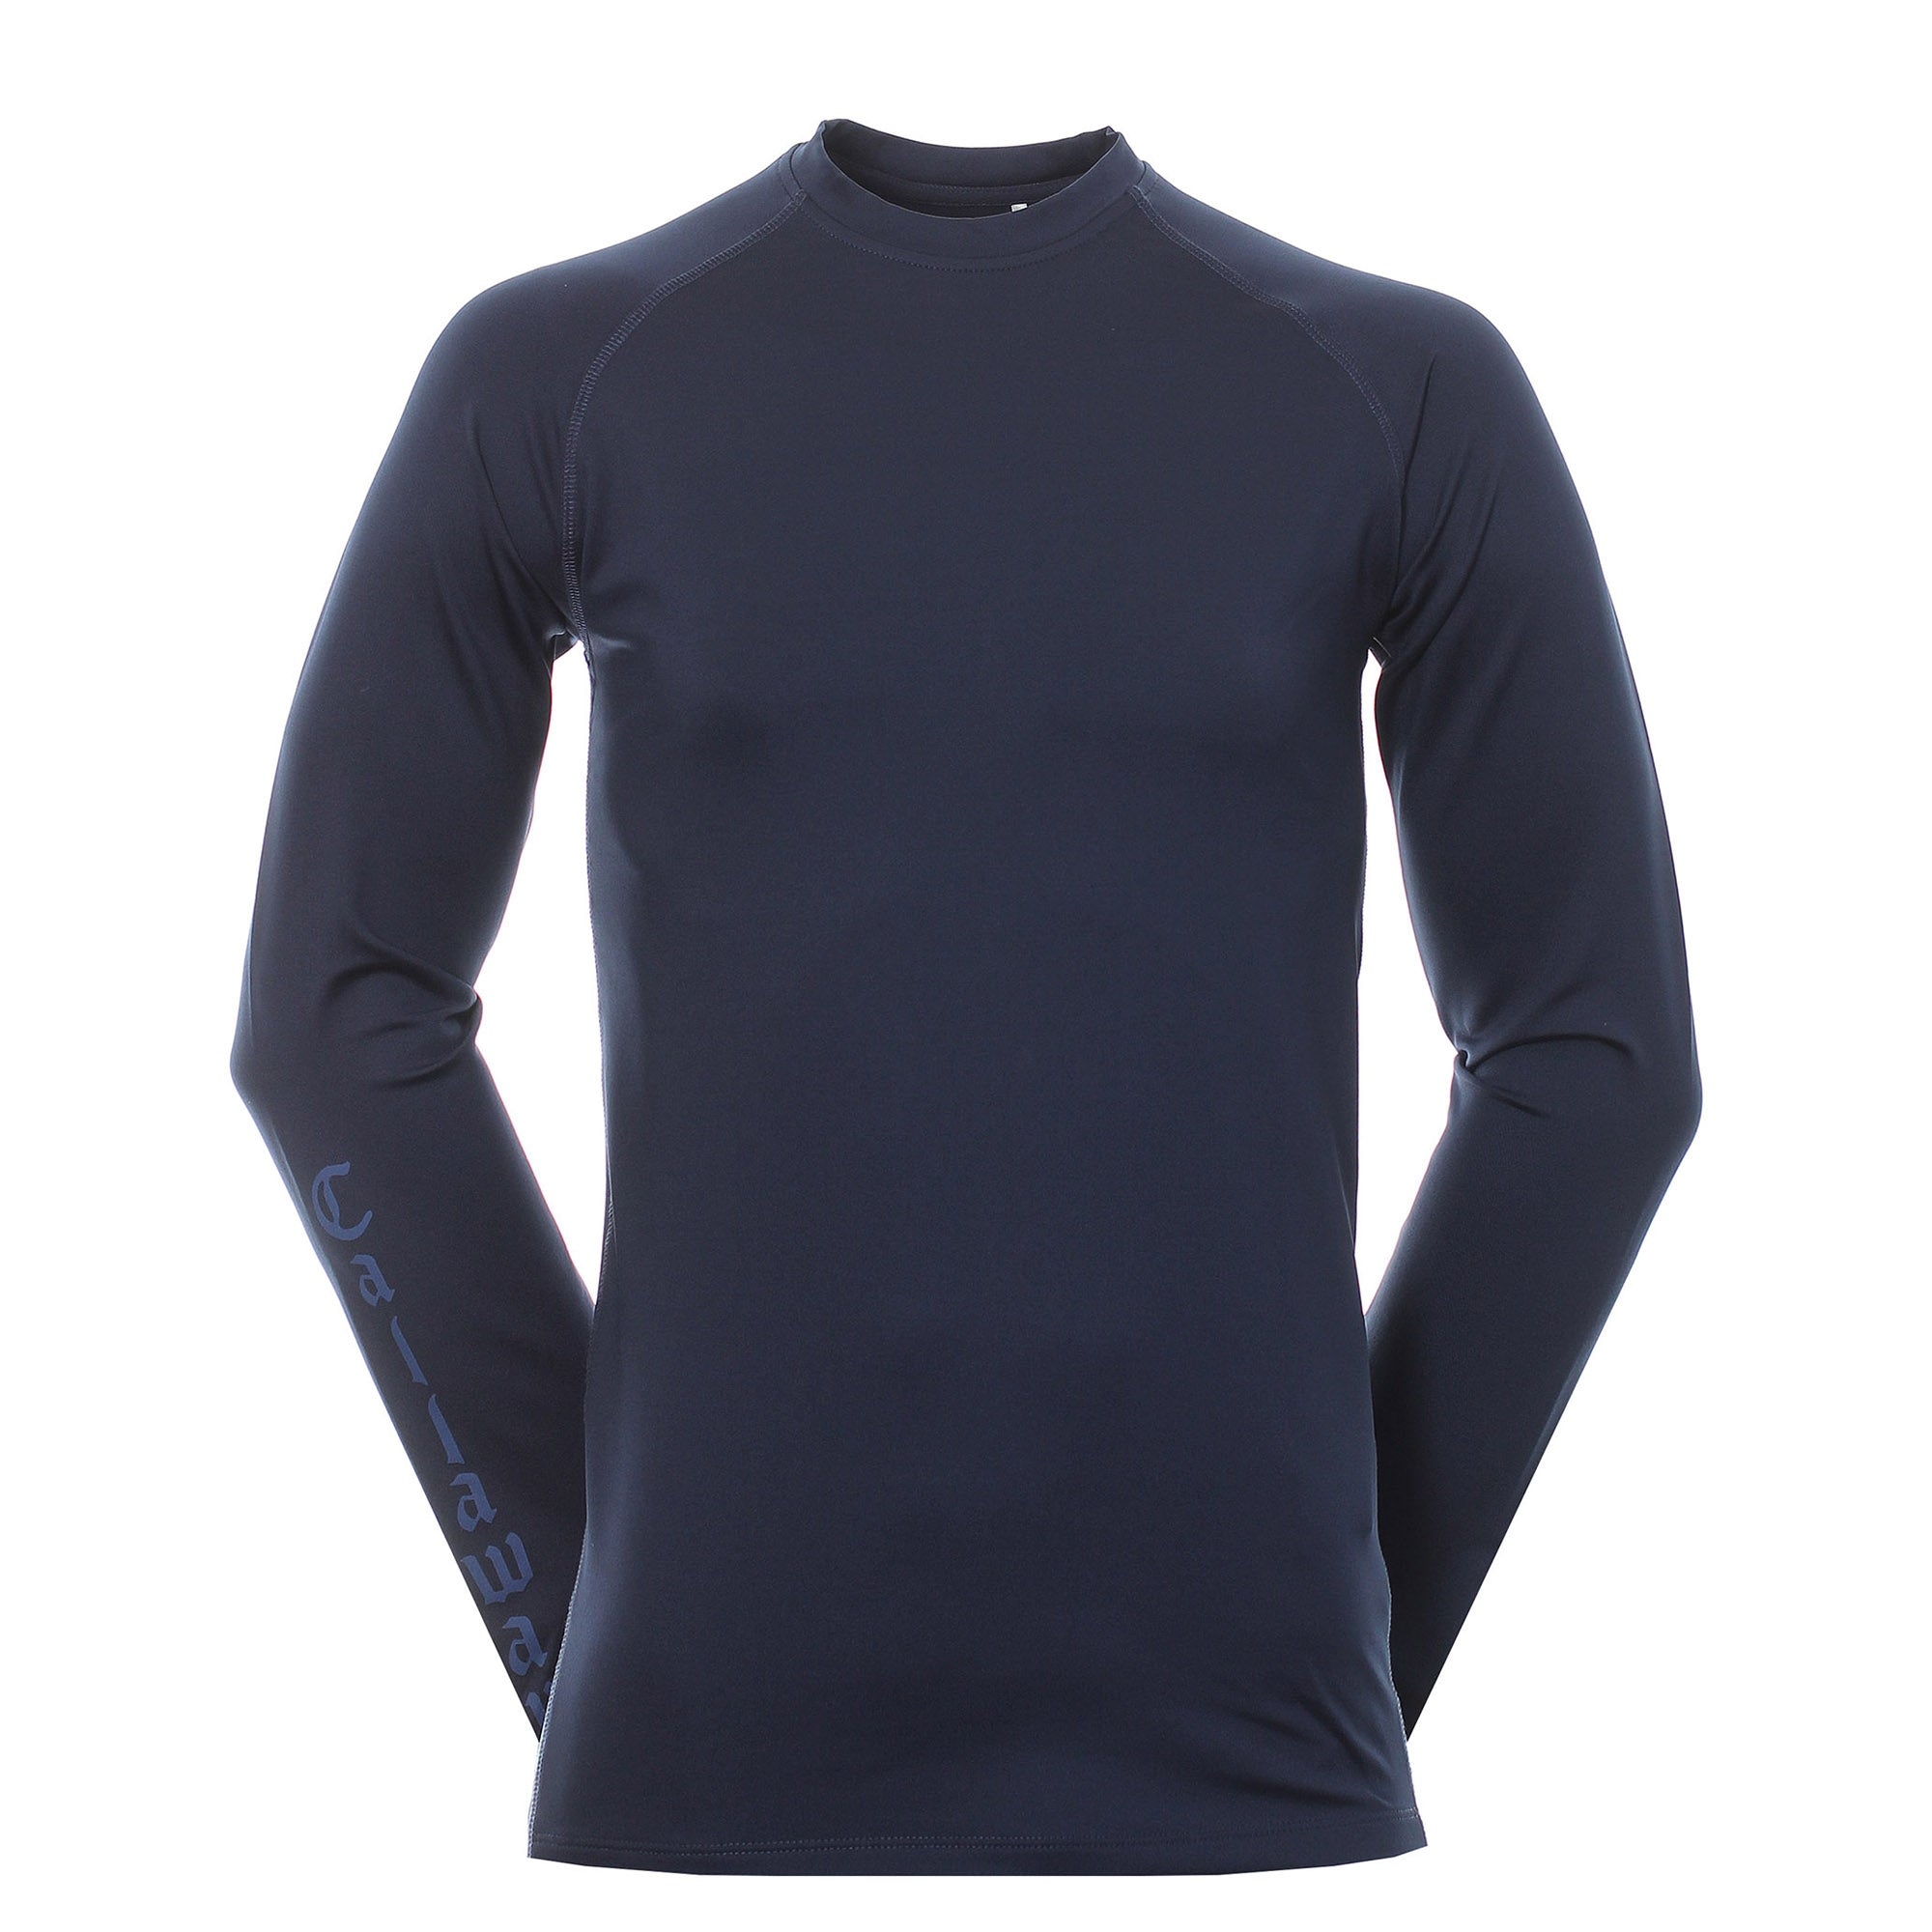 Callaway Golf Long Sleeve Thermal Baselayer